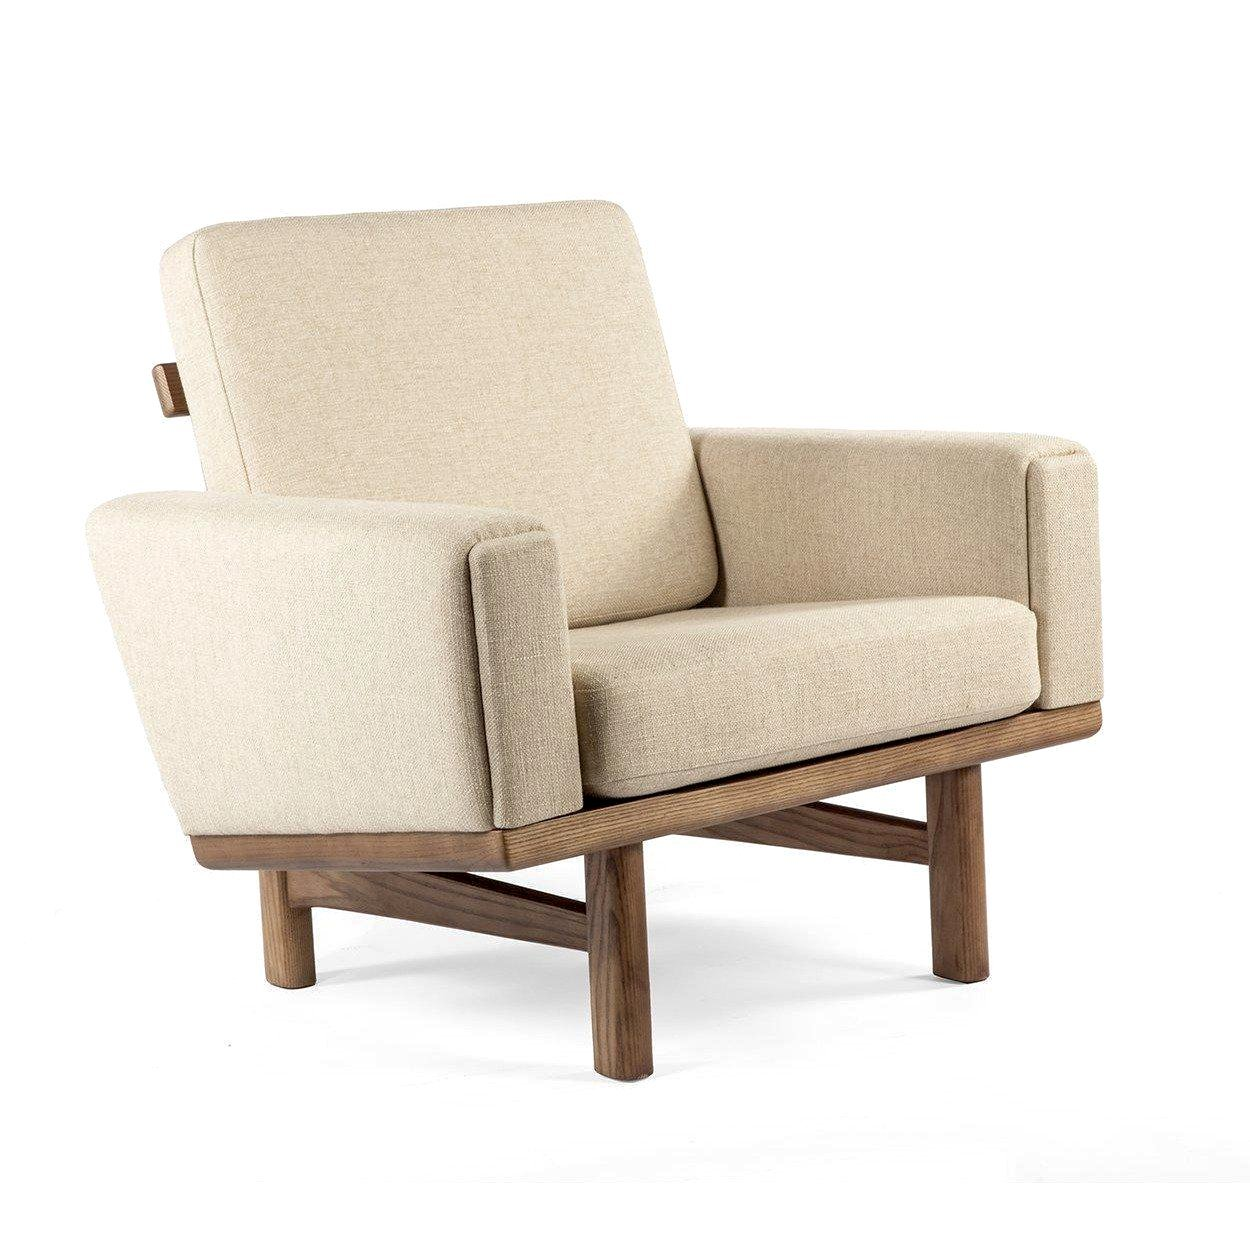 [FEC1239BEIGE] Geleen One seater sofa